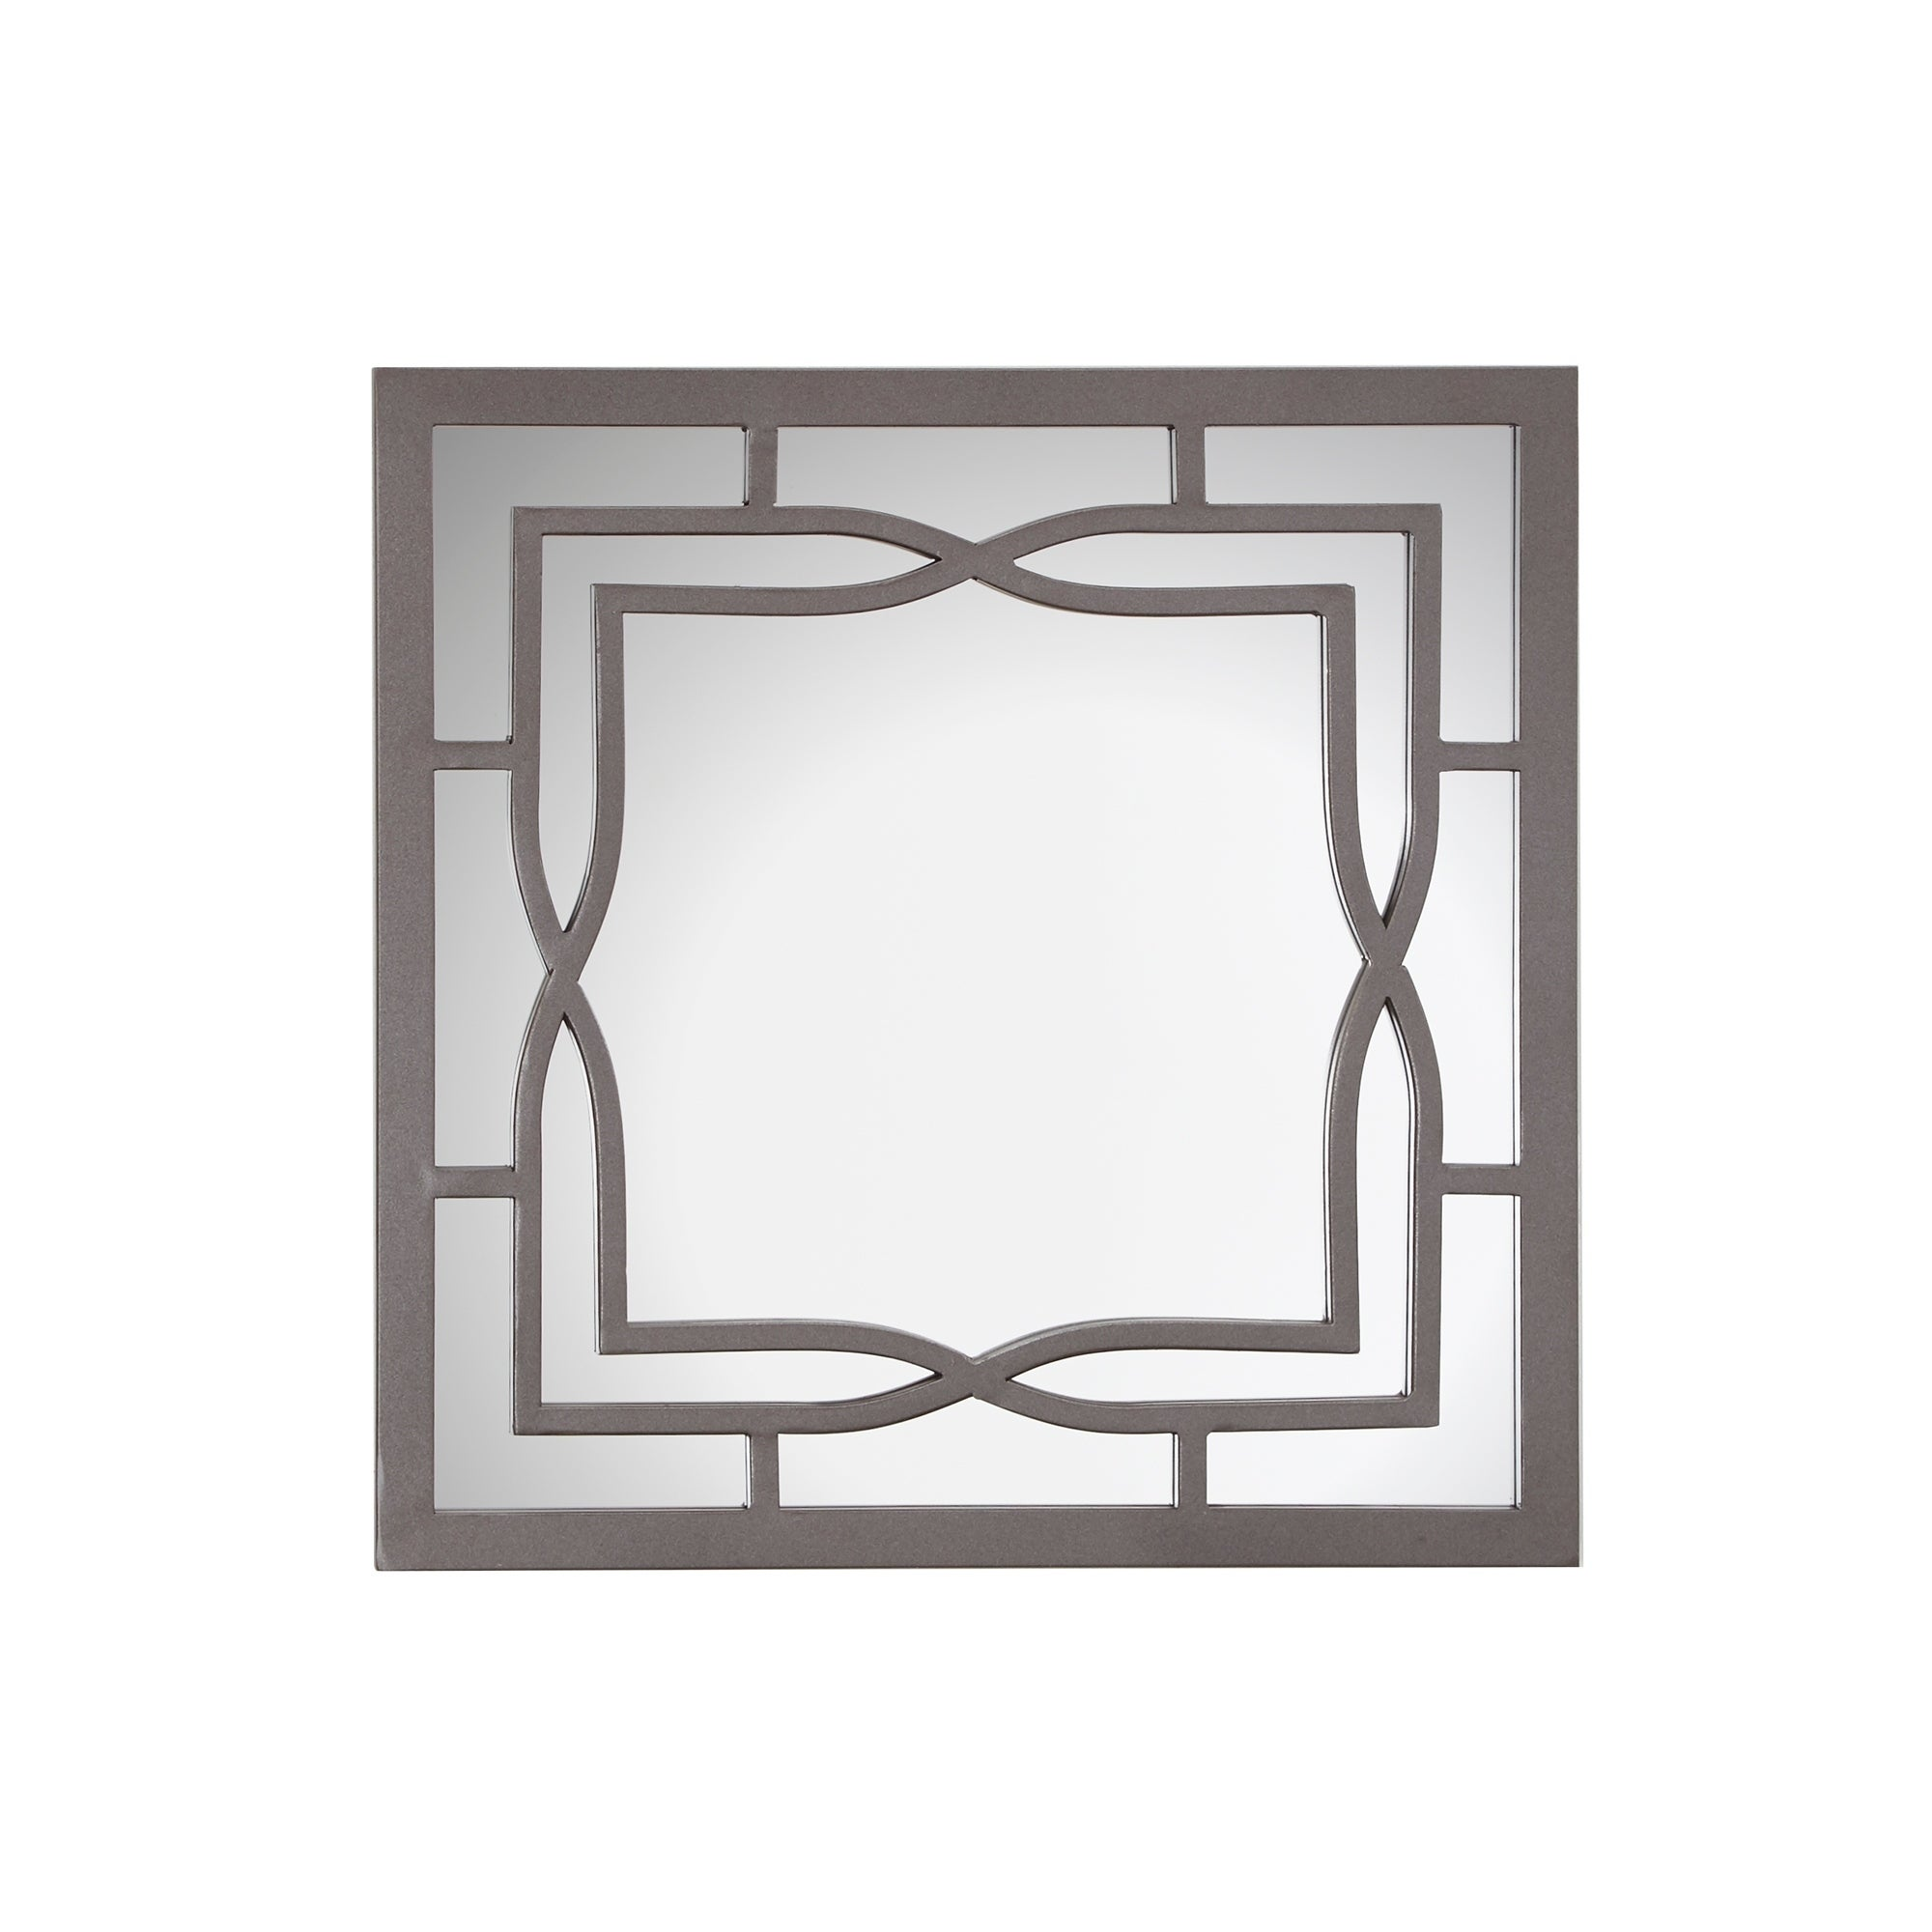 Shop Alicia Square Wall Mirror with Decorative Metal Frame - Gun ...